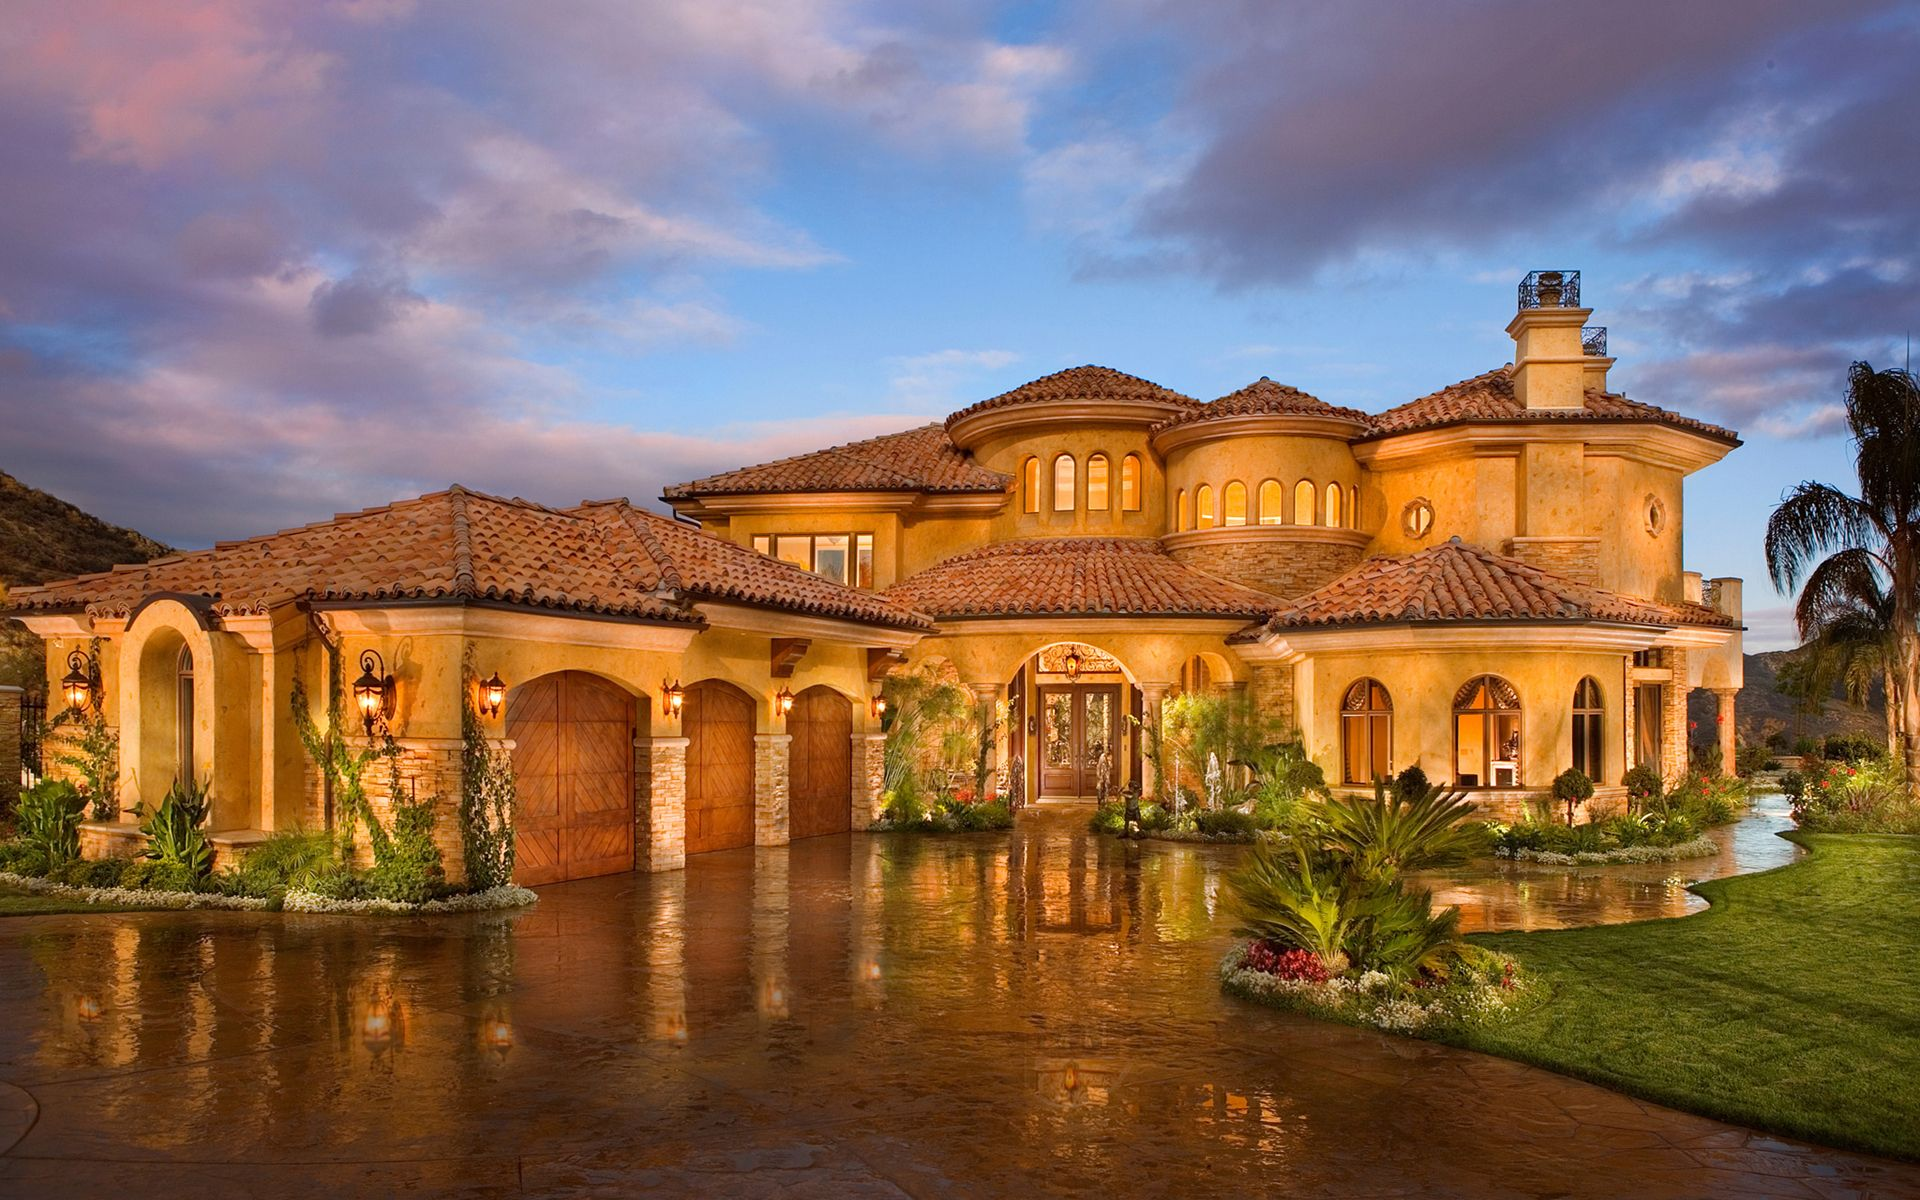 The audrey custom home designed and built by tampa home builders - We Are Designer Luxury Home Builders That Combine Affordable Custom Home Building And We Do It